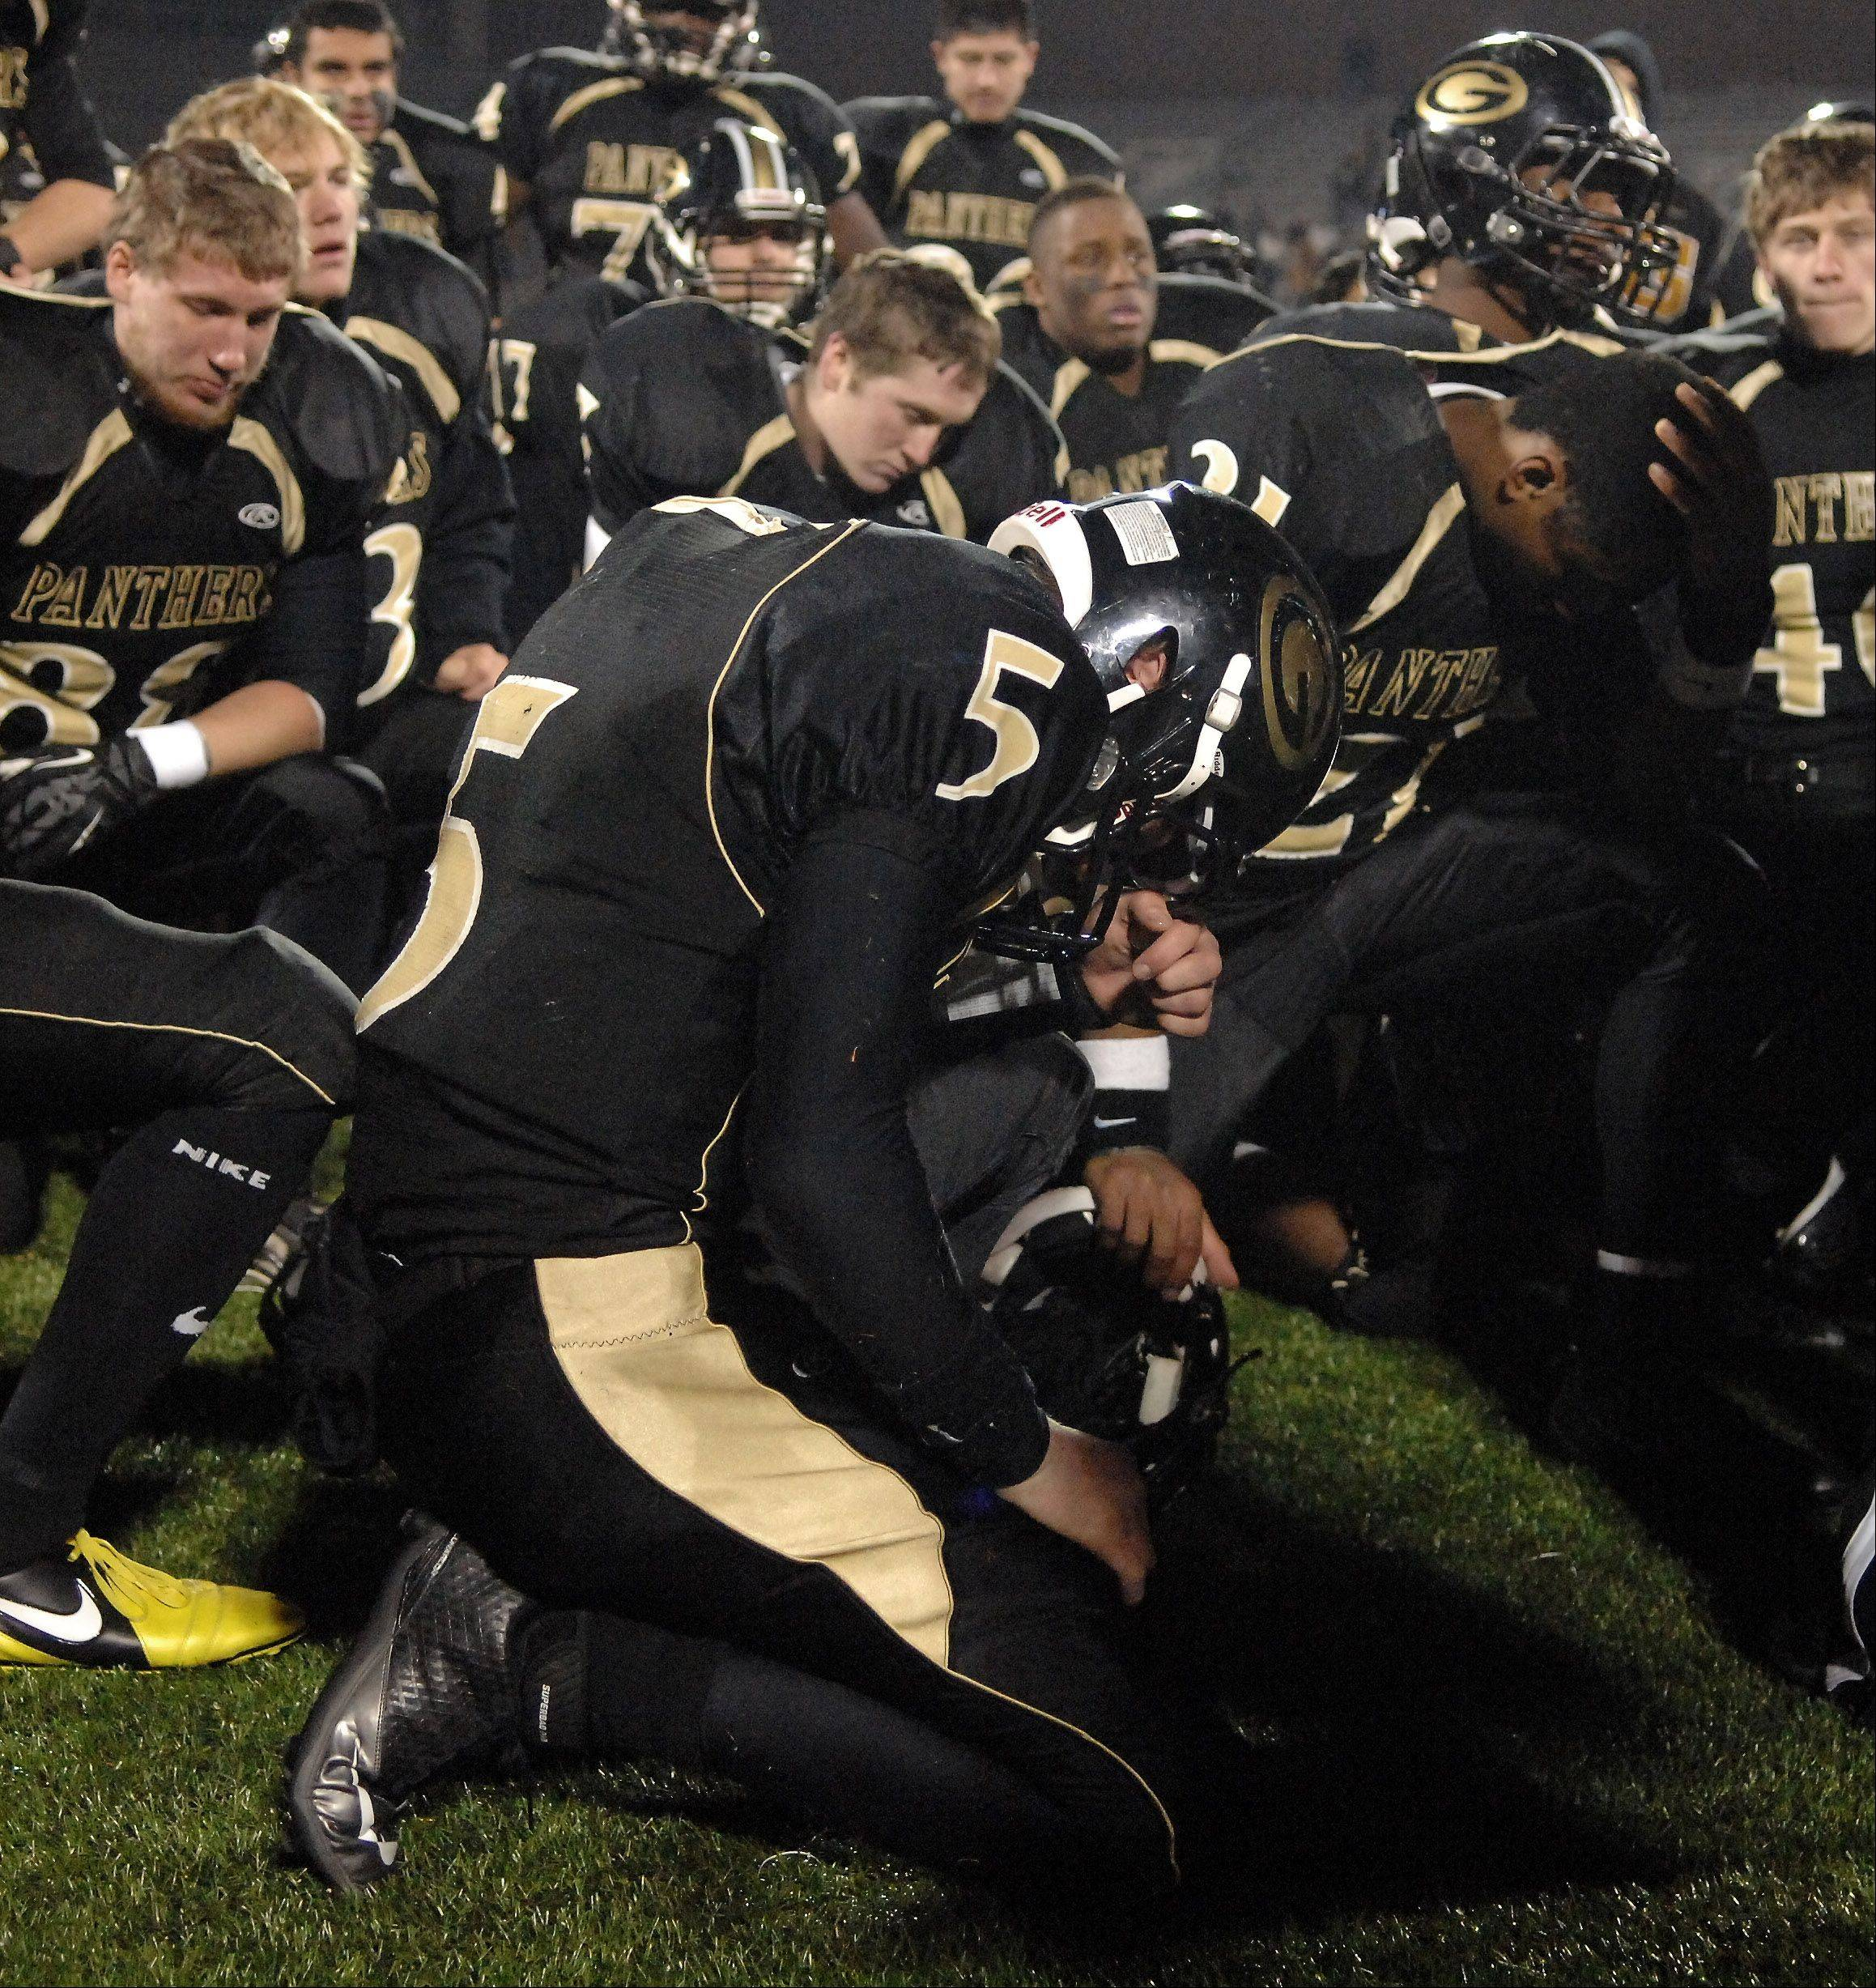 Glenbard North�s Bran Murphy bows his head following the Panthers� loss to Mt. Carmel during Saturday�s Class 8A state title game at Memorial Stadium in Champaign.